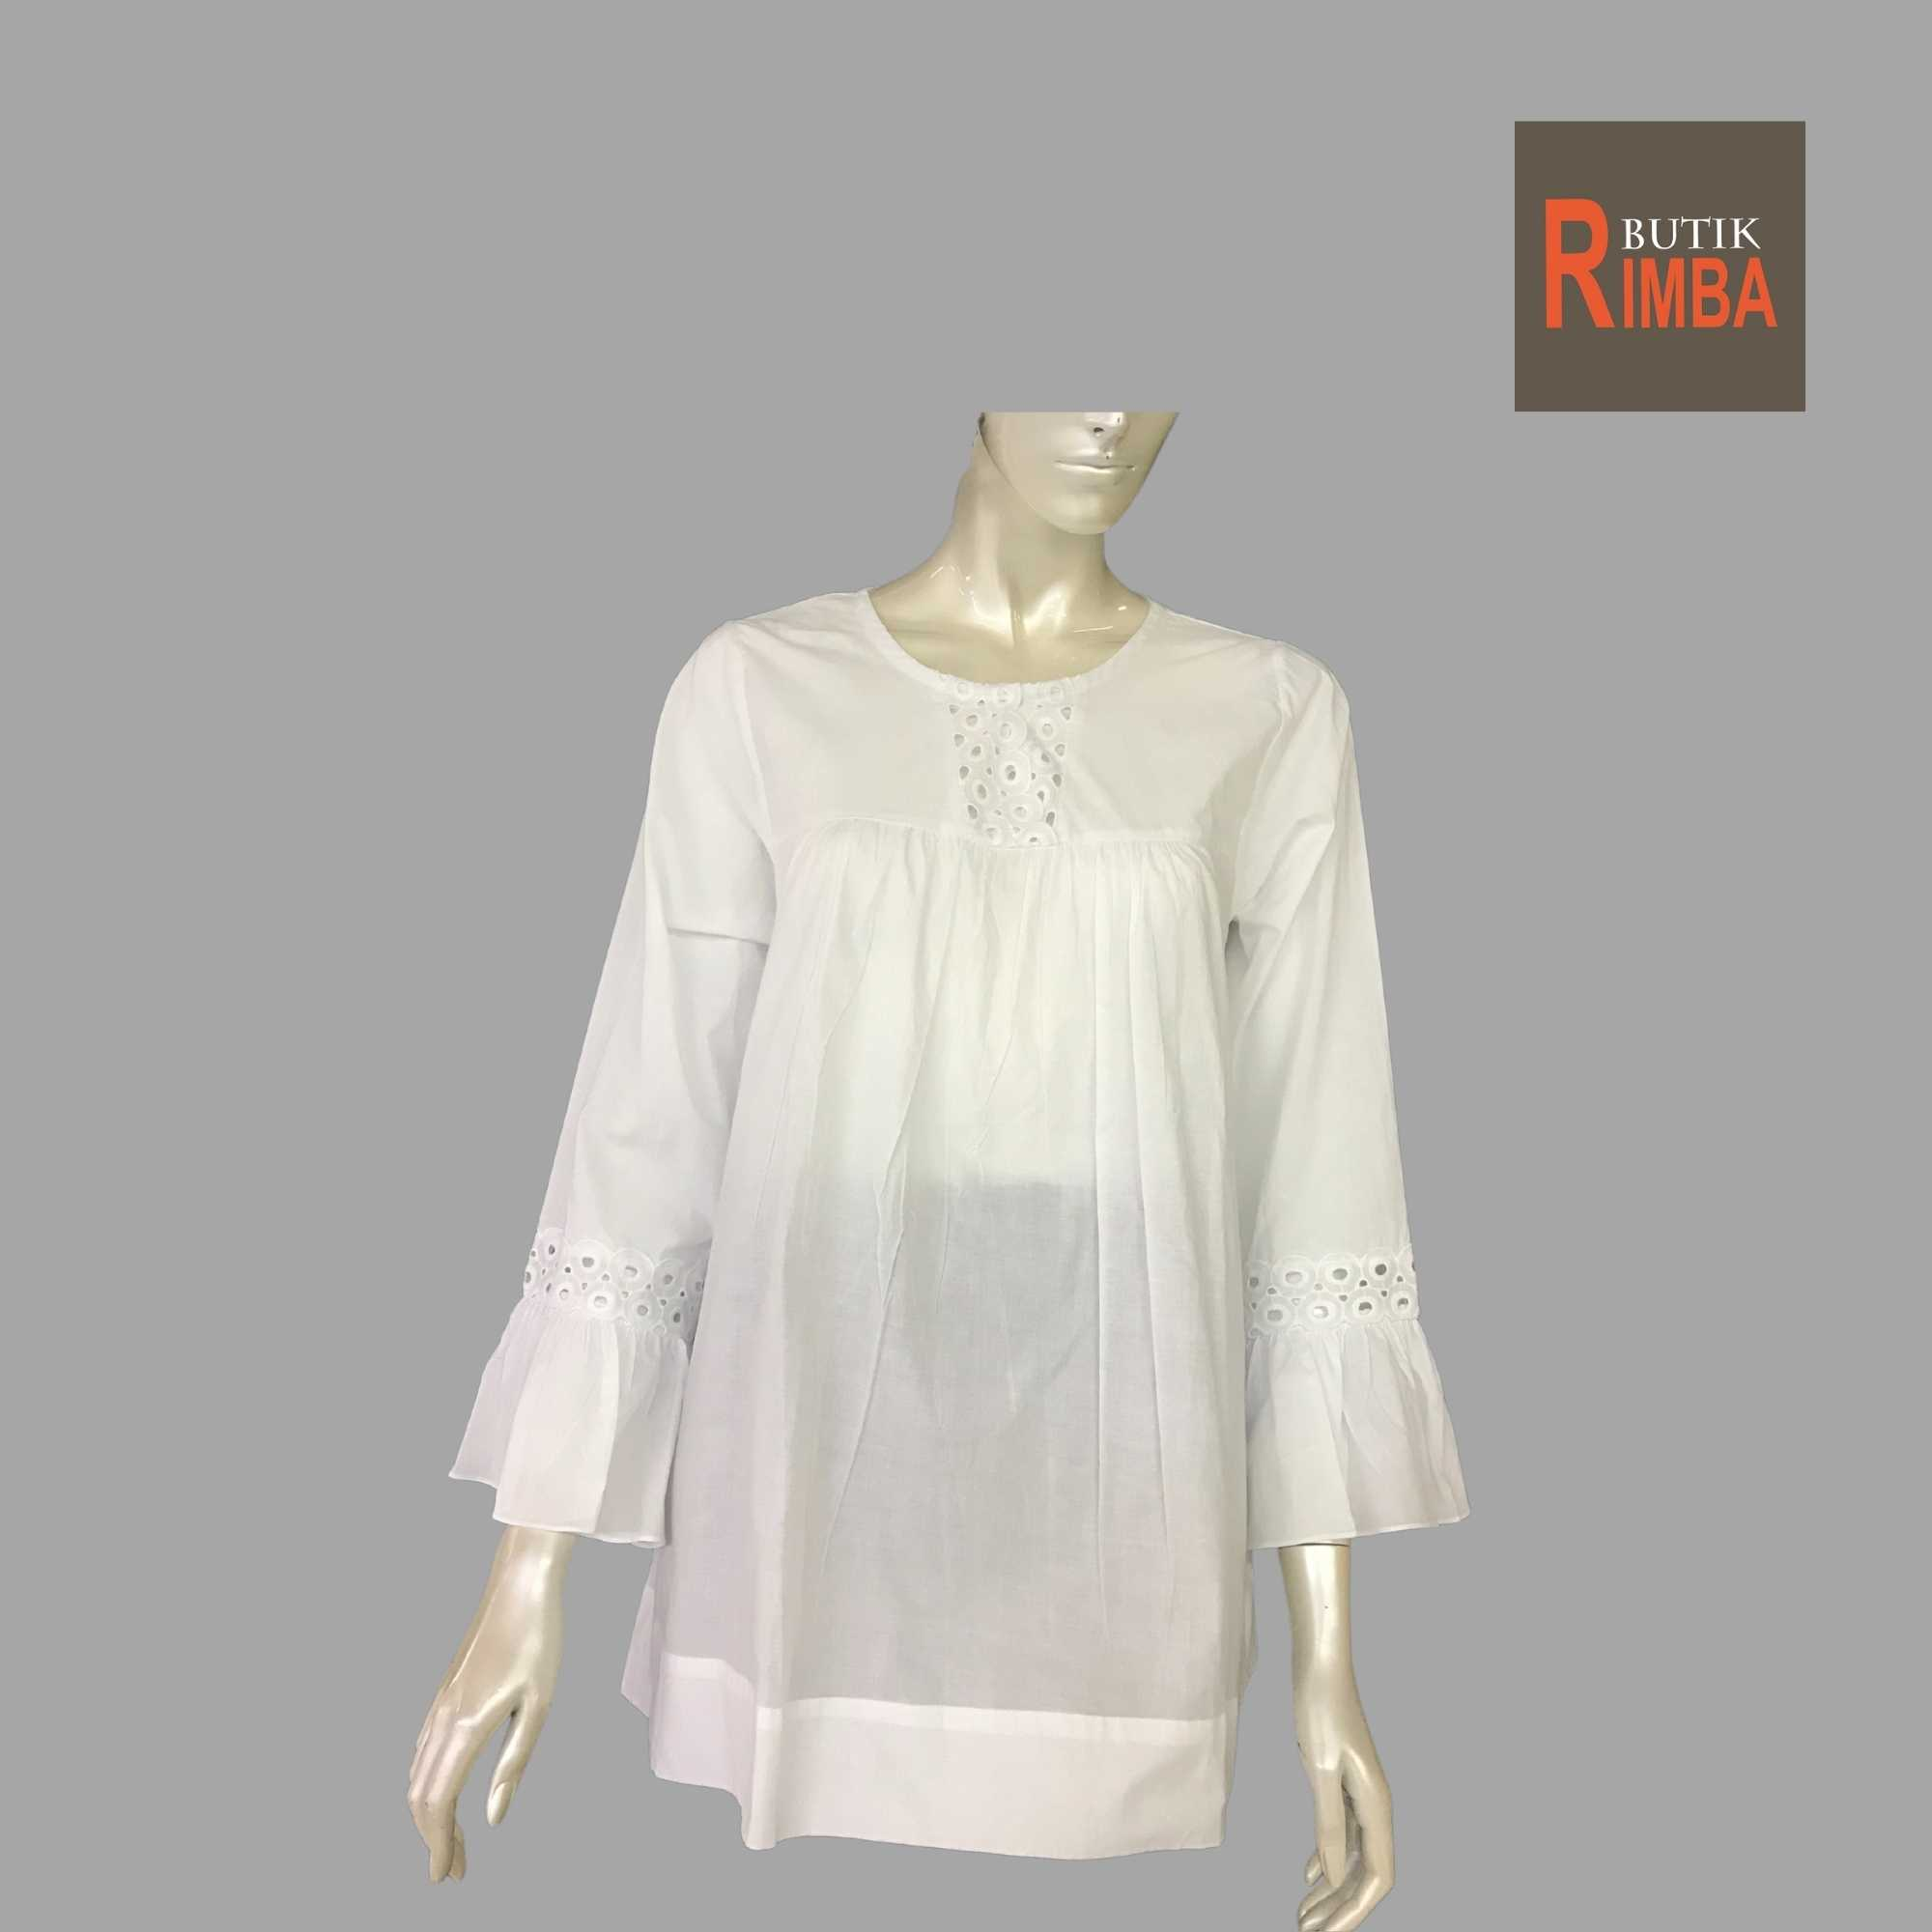 WOMEN CASUAL AND COMFORTABLE WHITE BLOUSE COTTON FREE SIZE PATTERN 17